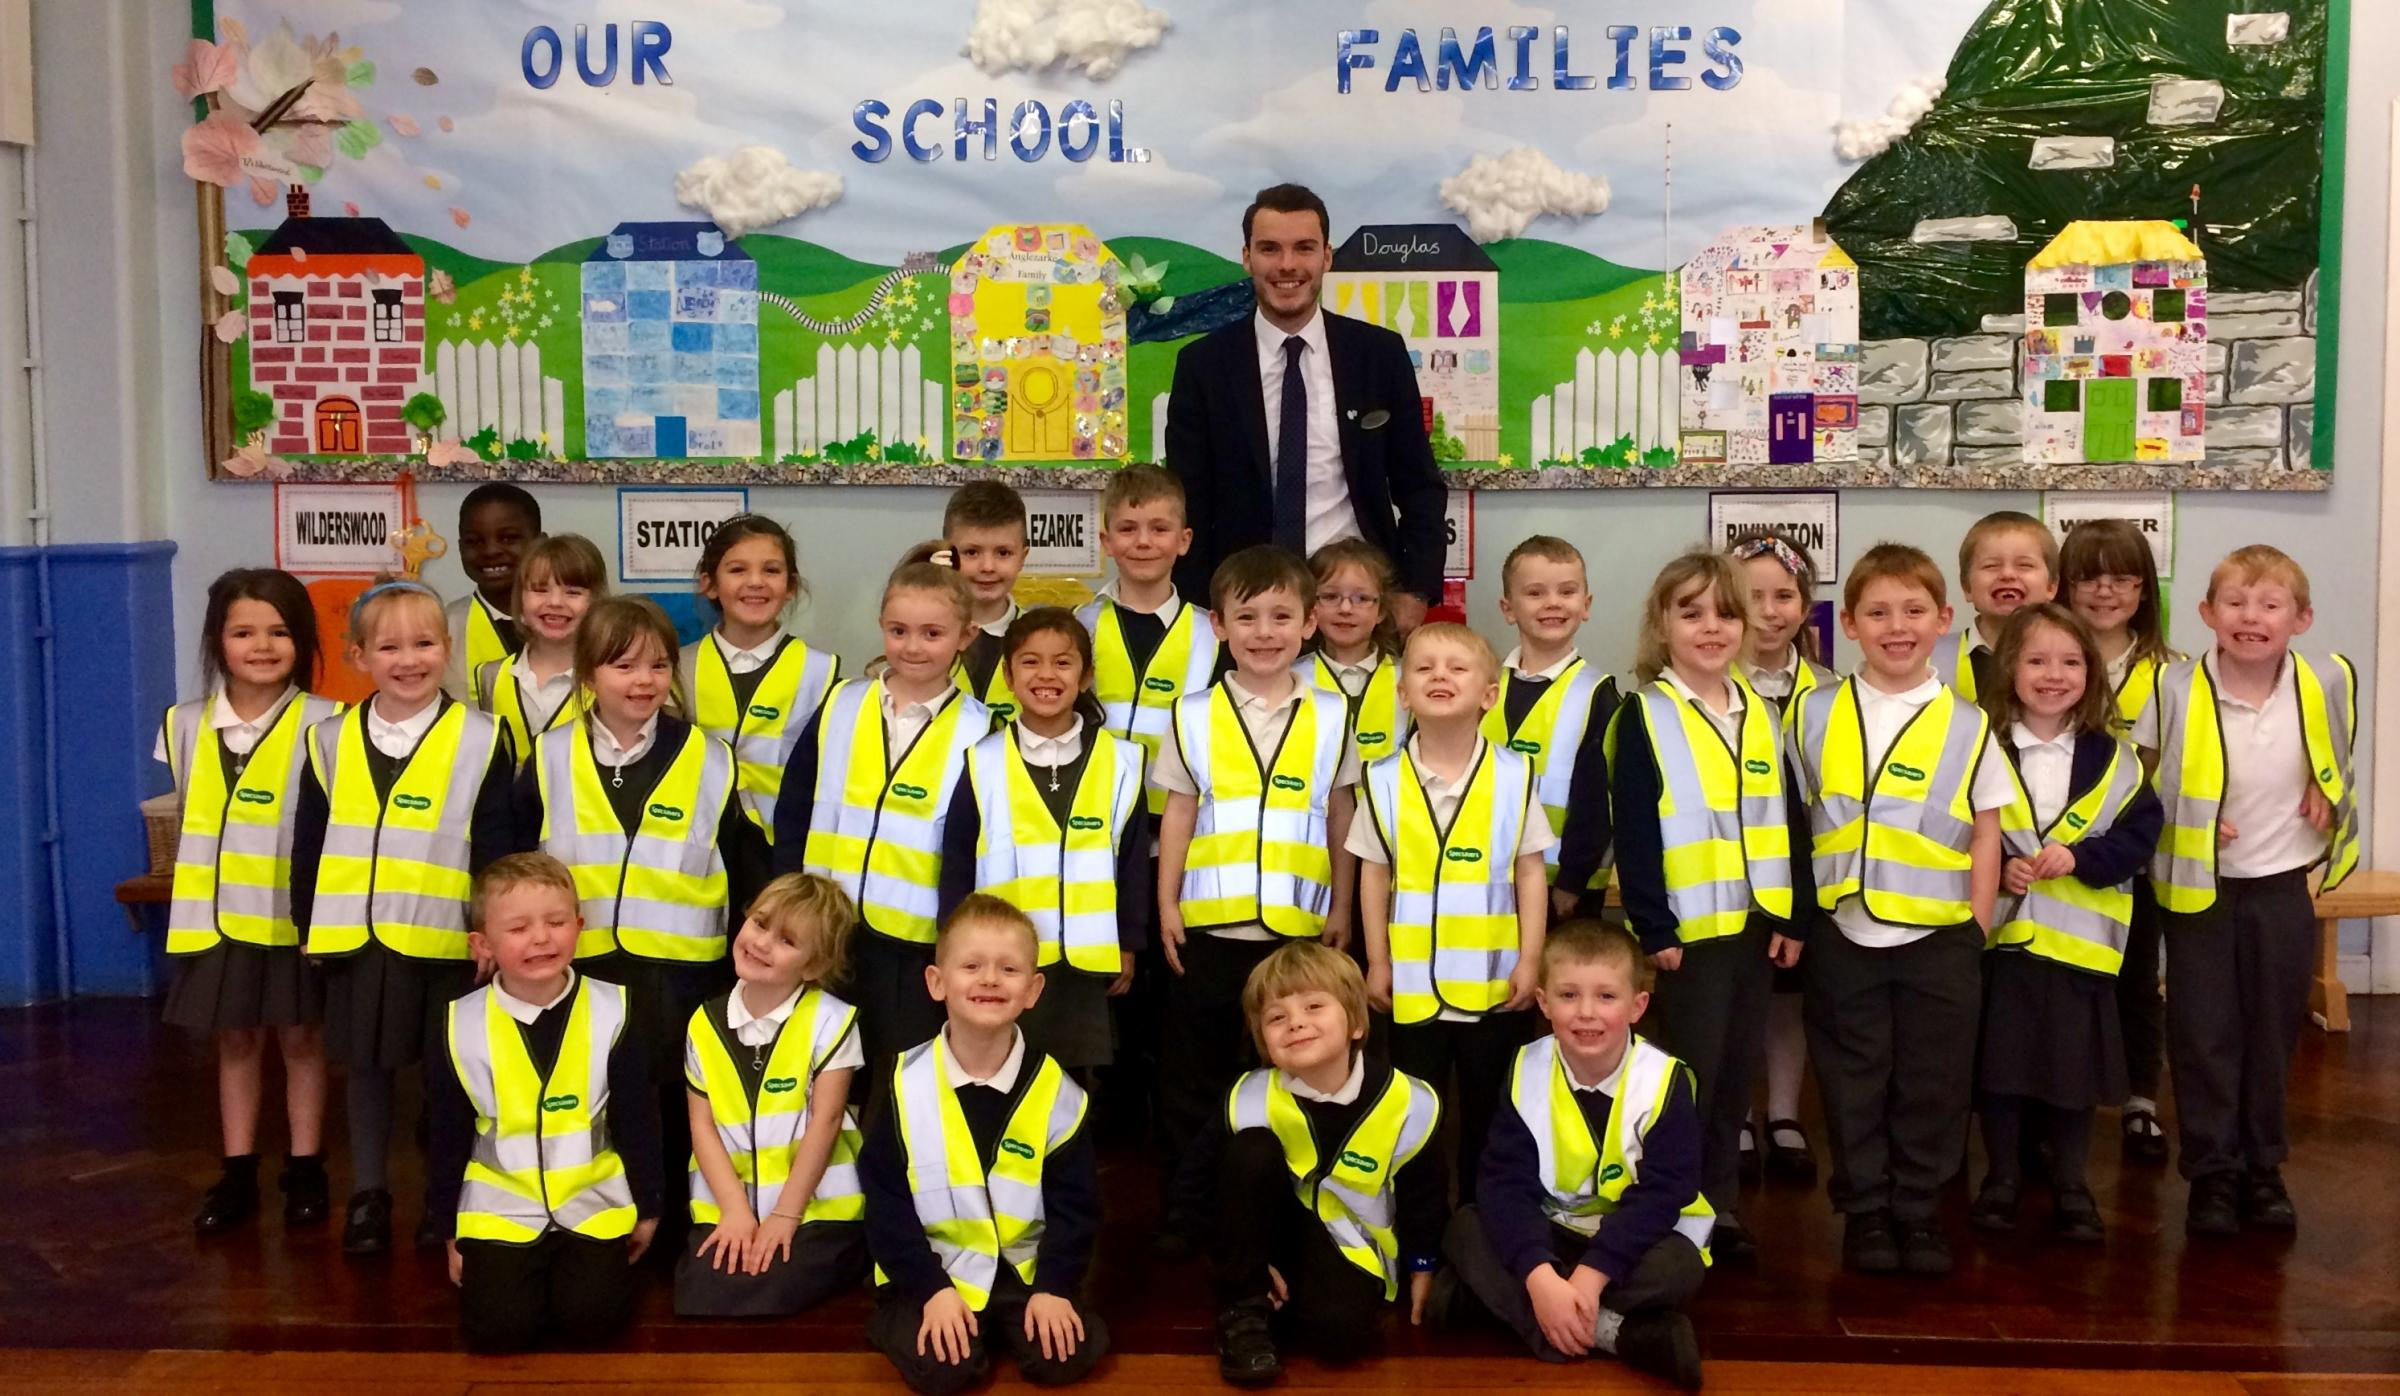 Martin Booth, manager of Specsavers in Crompton Place Shopping Centre, with children from Lord Street Primary school wearing their high-vis vests